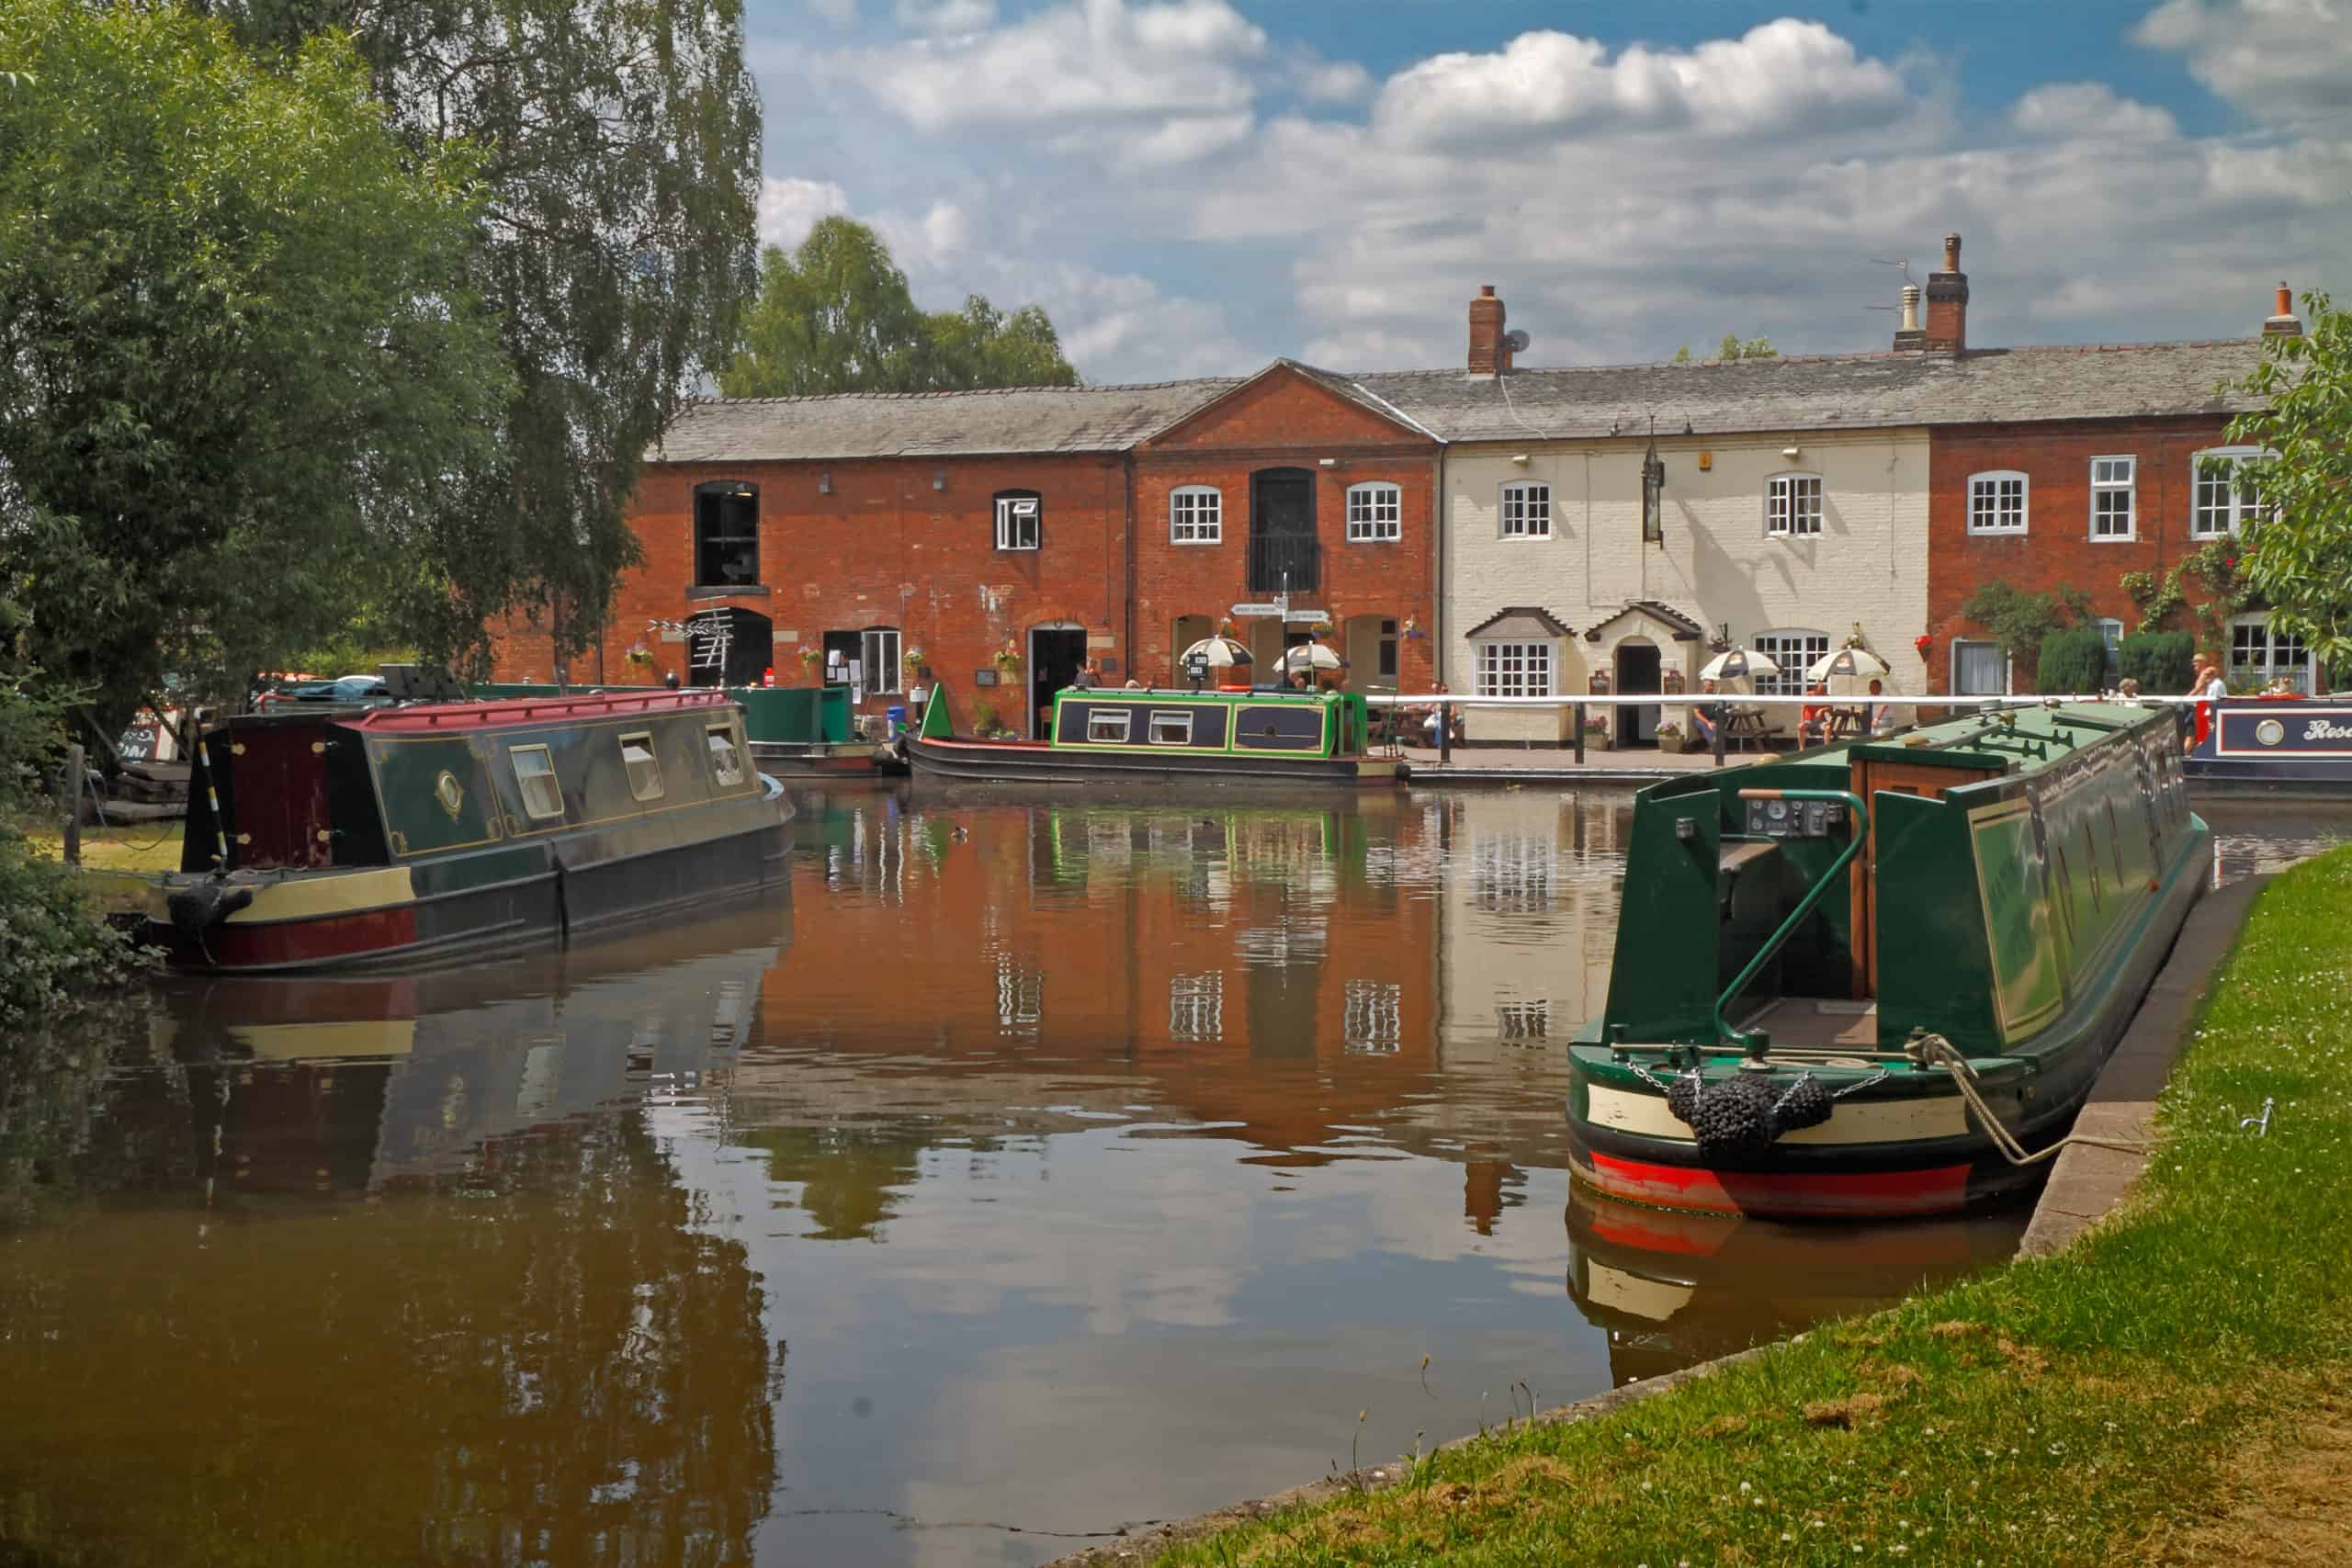 life on the canal is tranquil and quiet